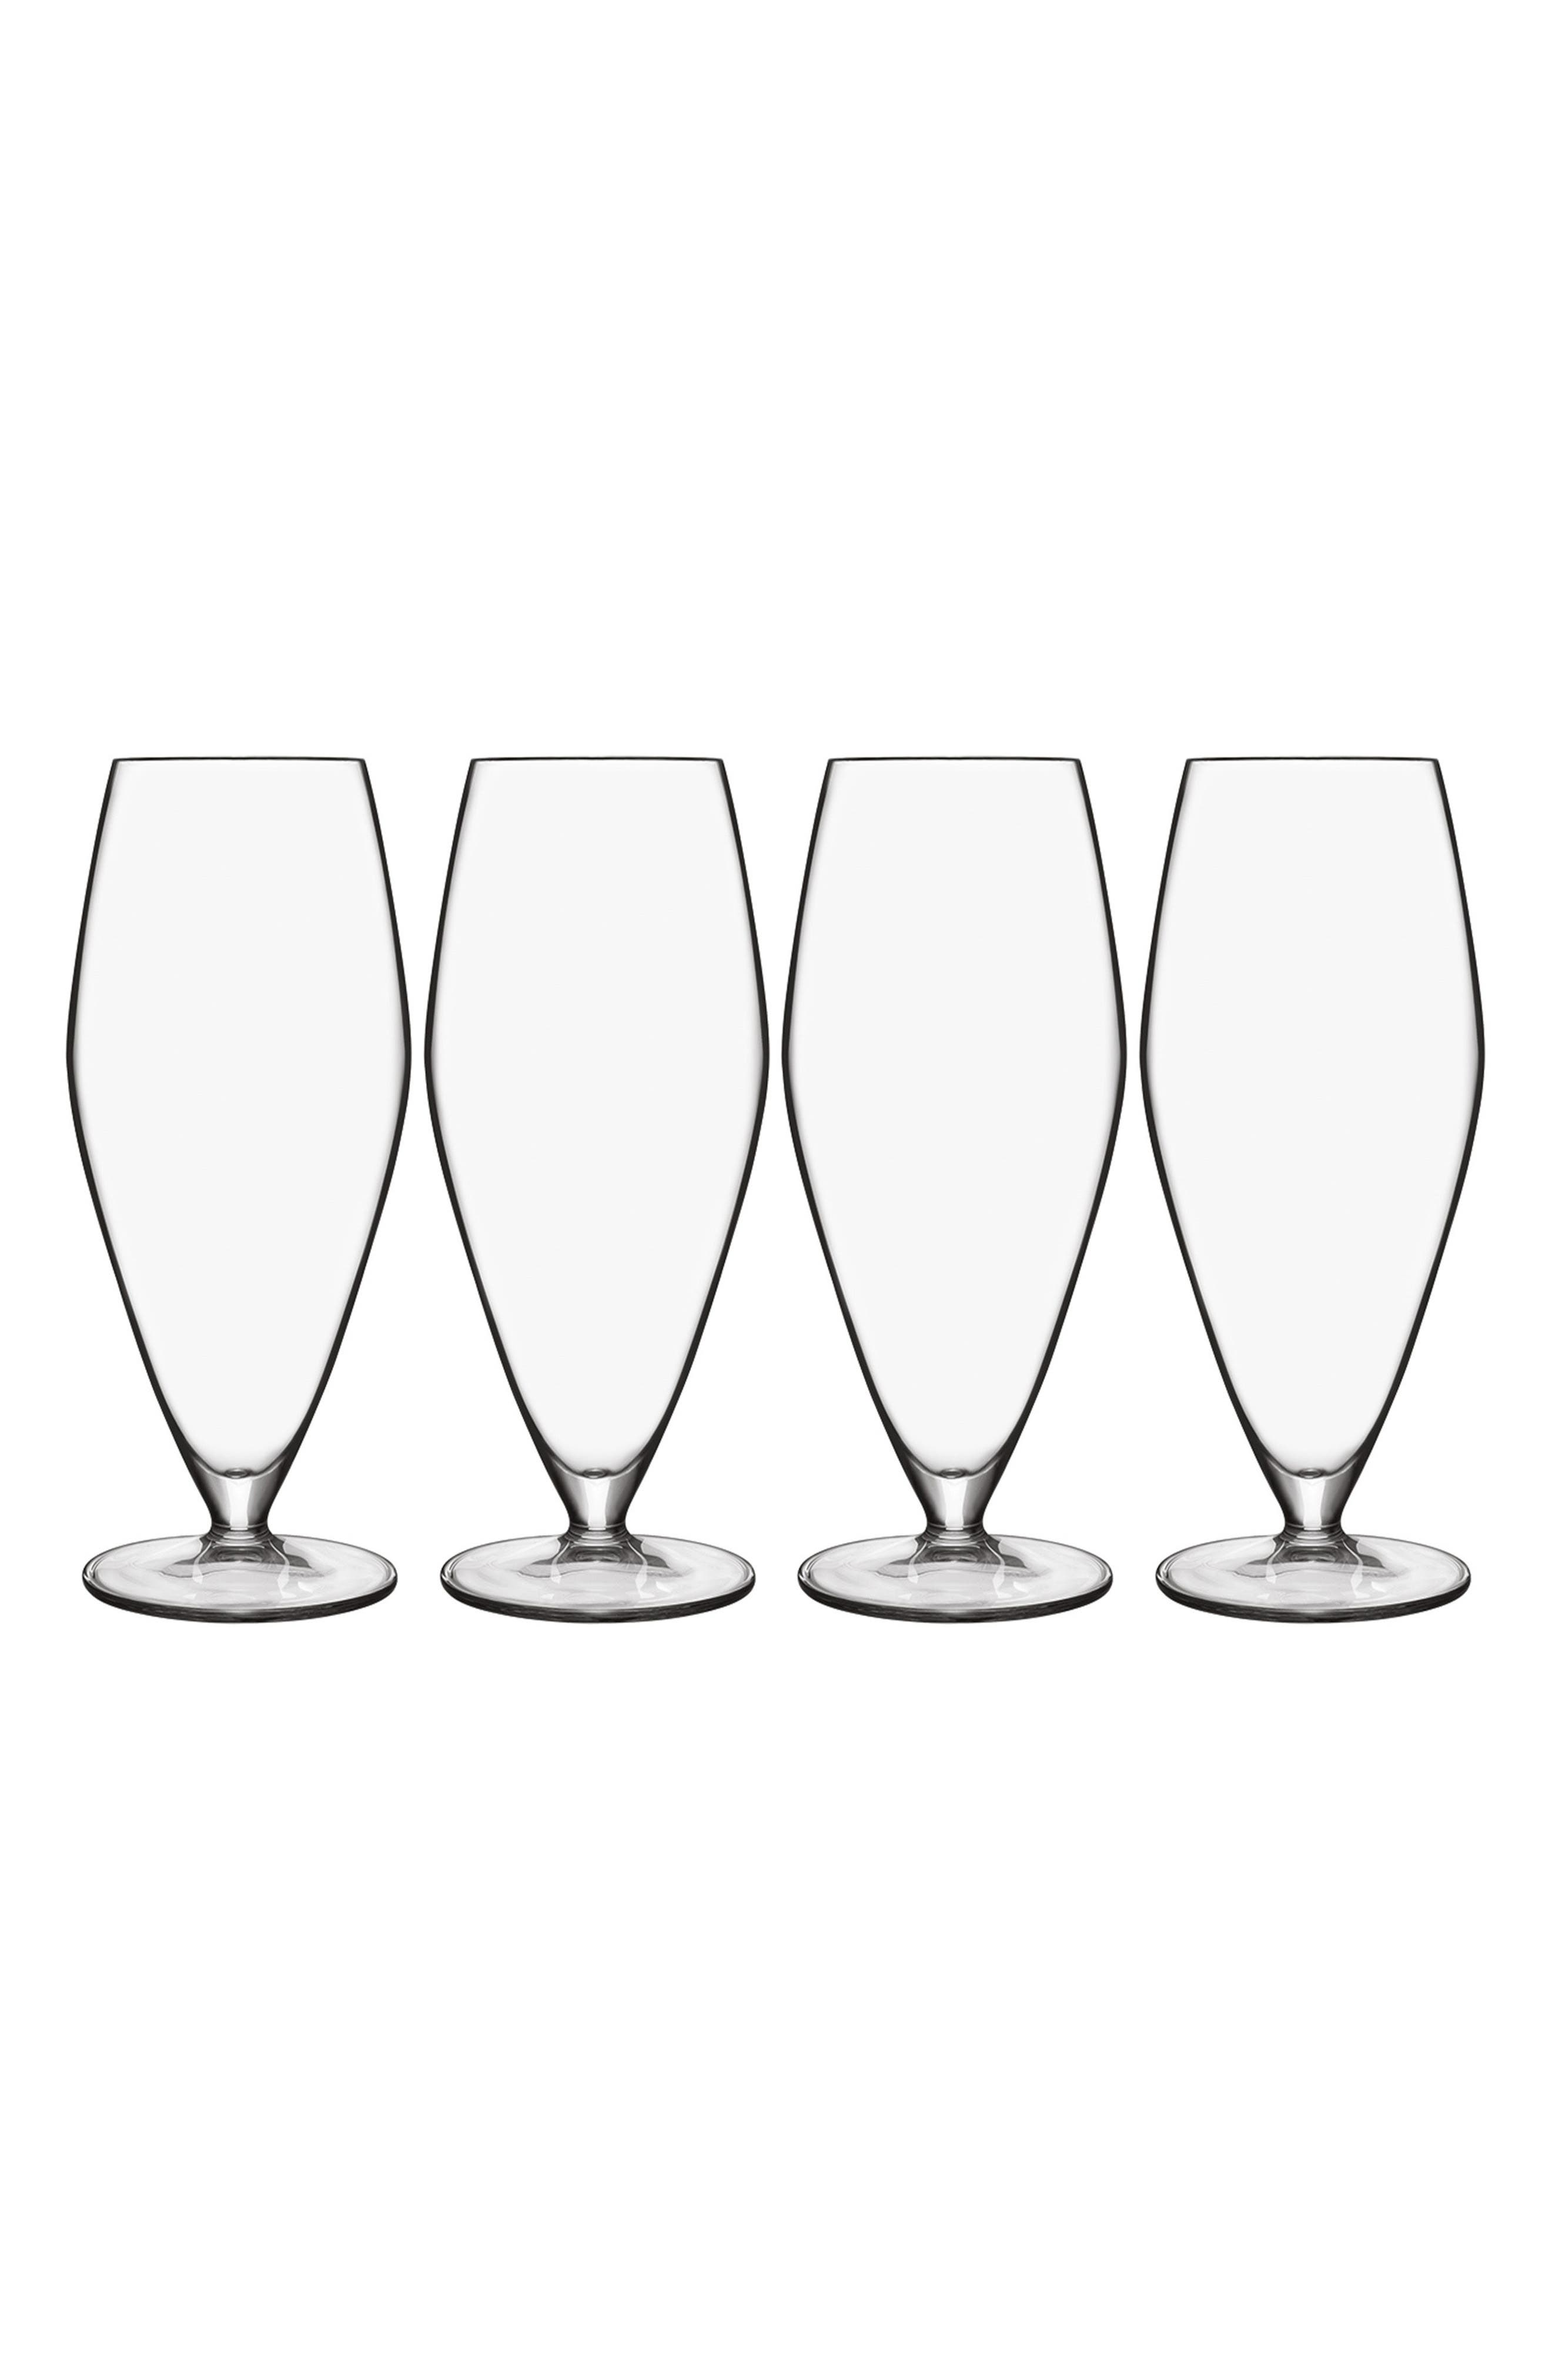 T-Glass Set of 4 Prosecco Glasses,                             Main thumbnail 1, color,                             100